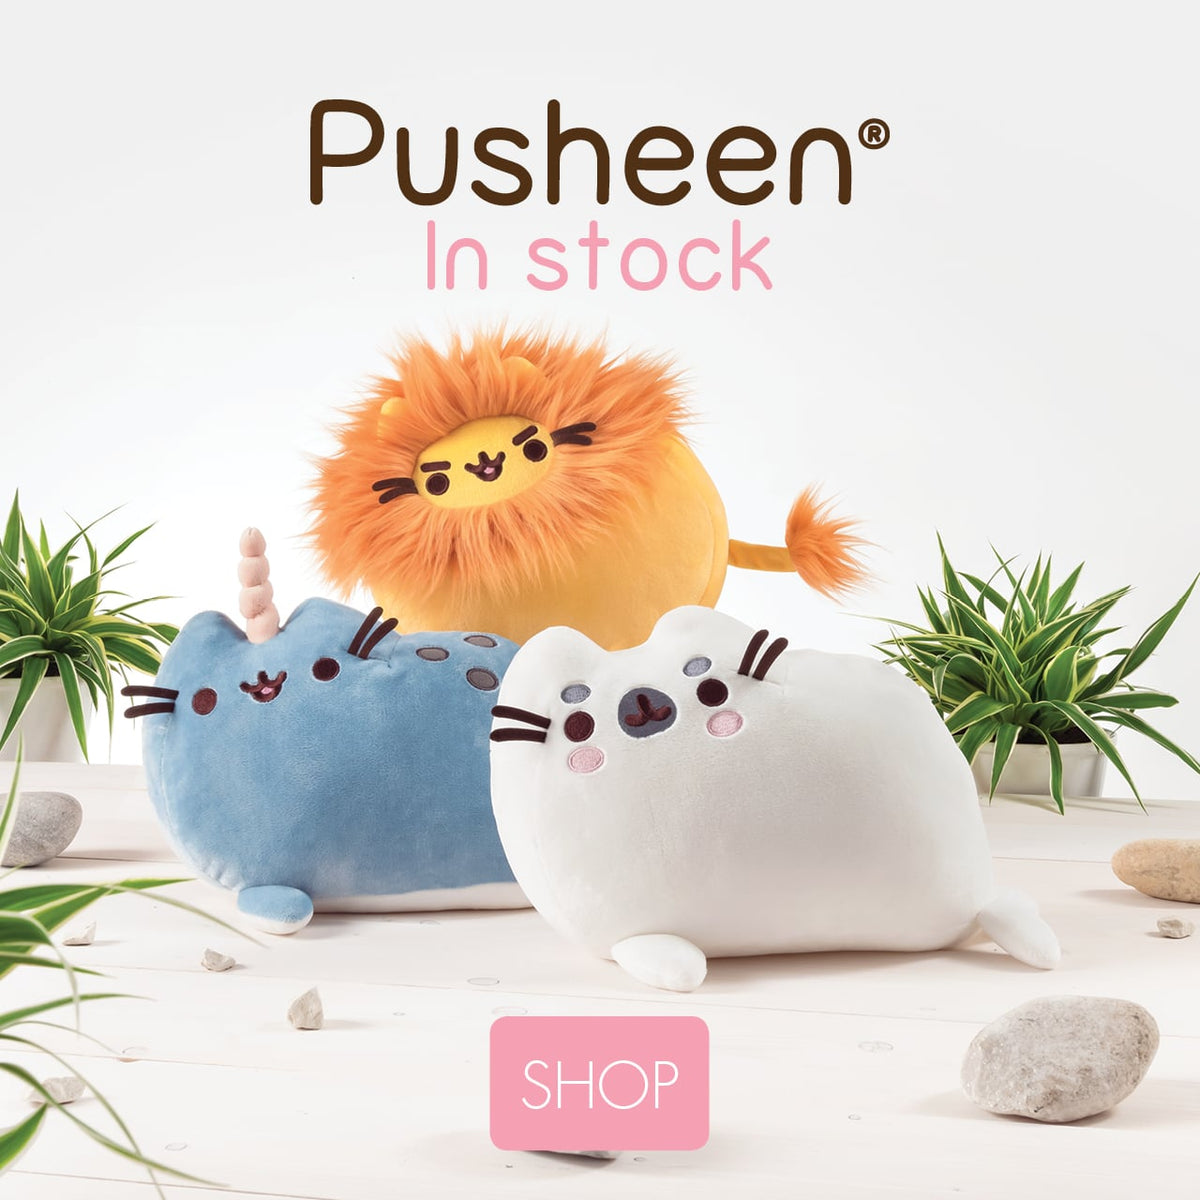 Pusheen in stock